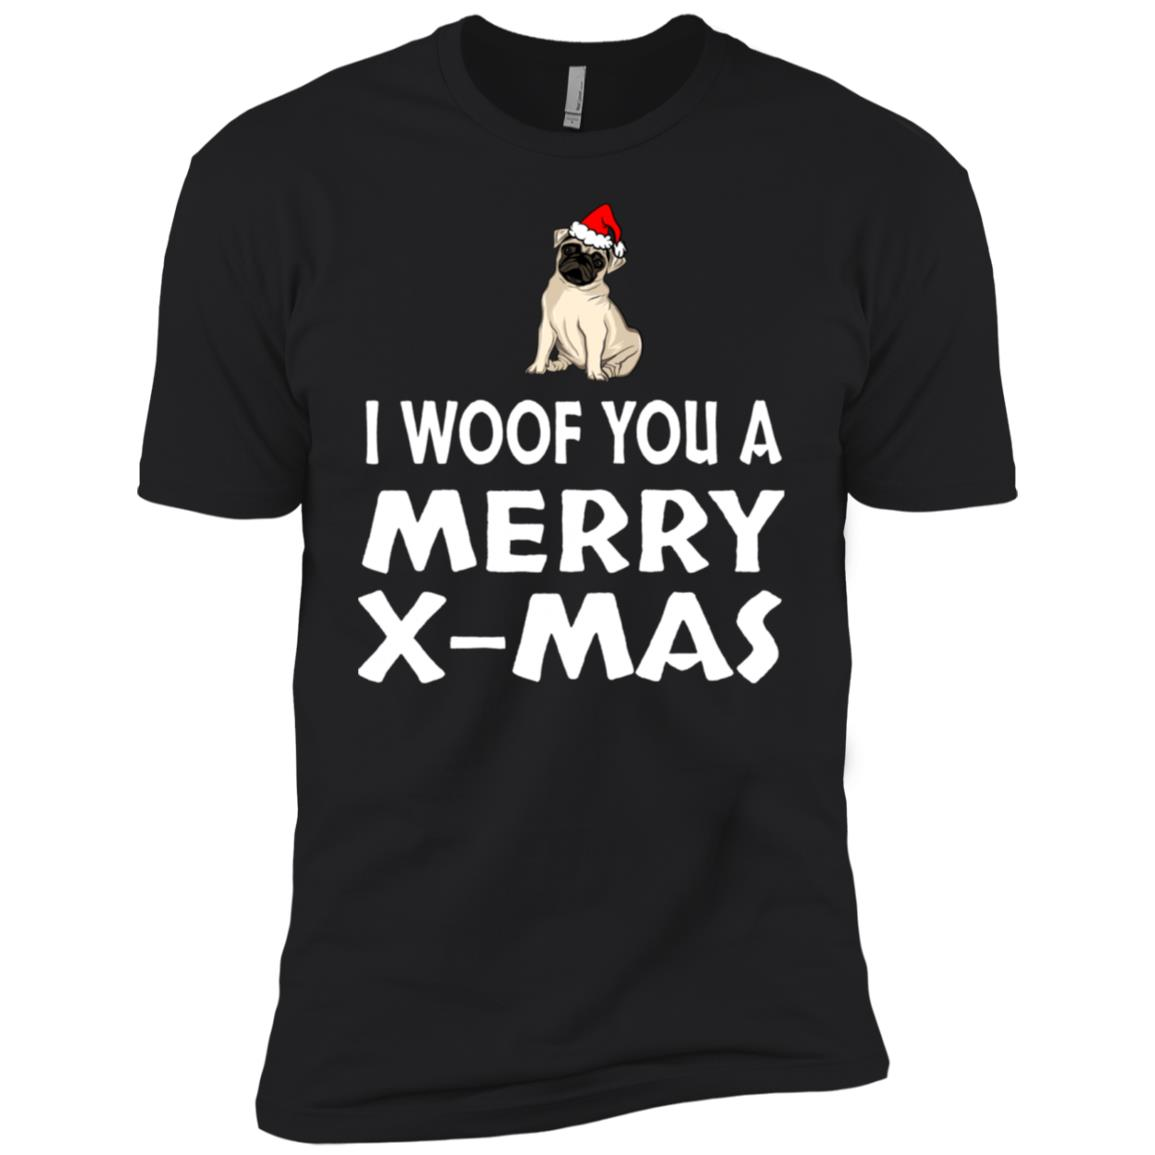 I Woof You A Merry X-mas Men Short Sleeve T-Shirt